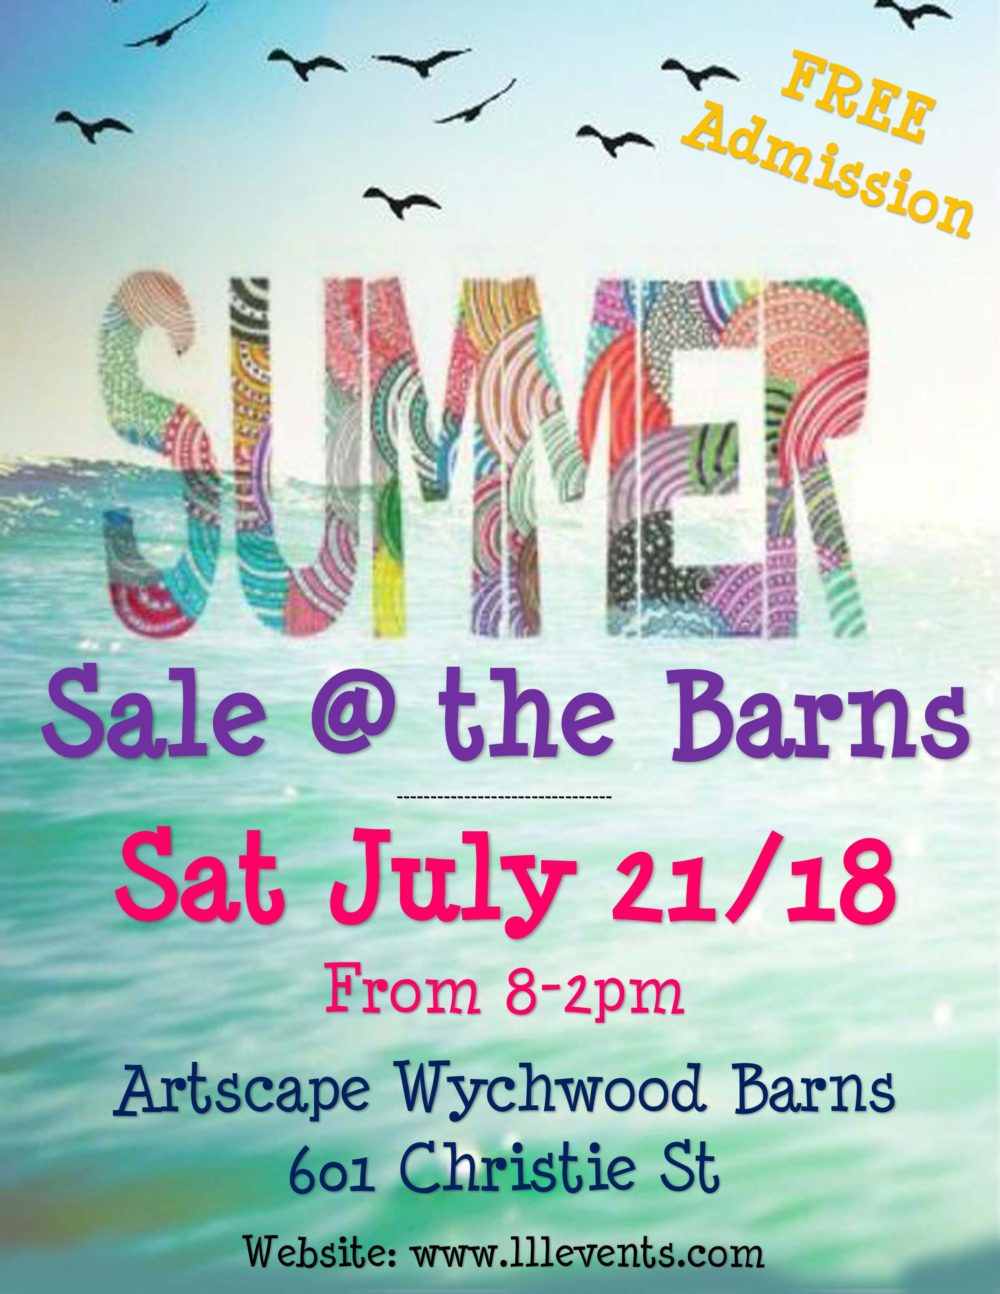 35.-SUMMER-SALE-@-THE-BARNS-flyer-page-0-e1530718938548.jpg